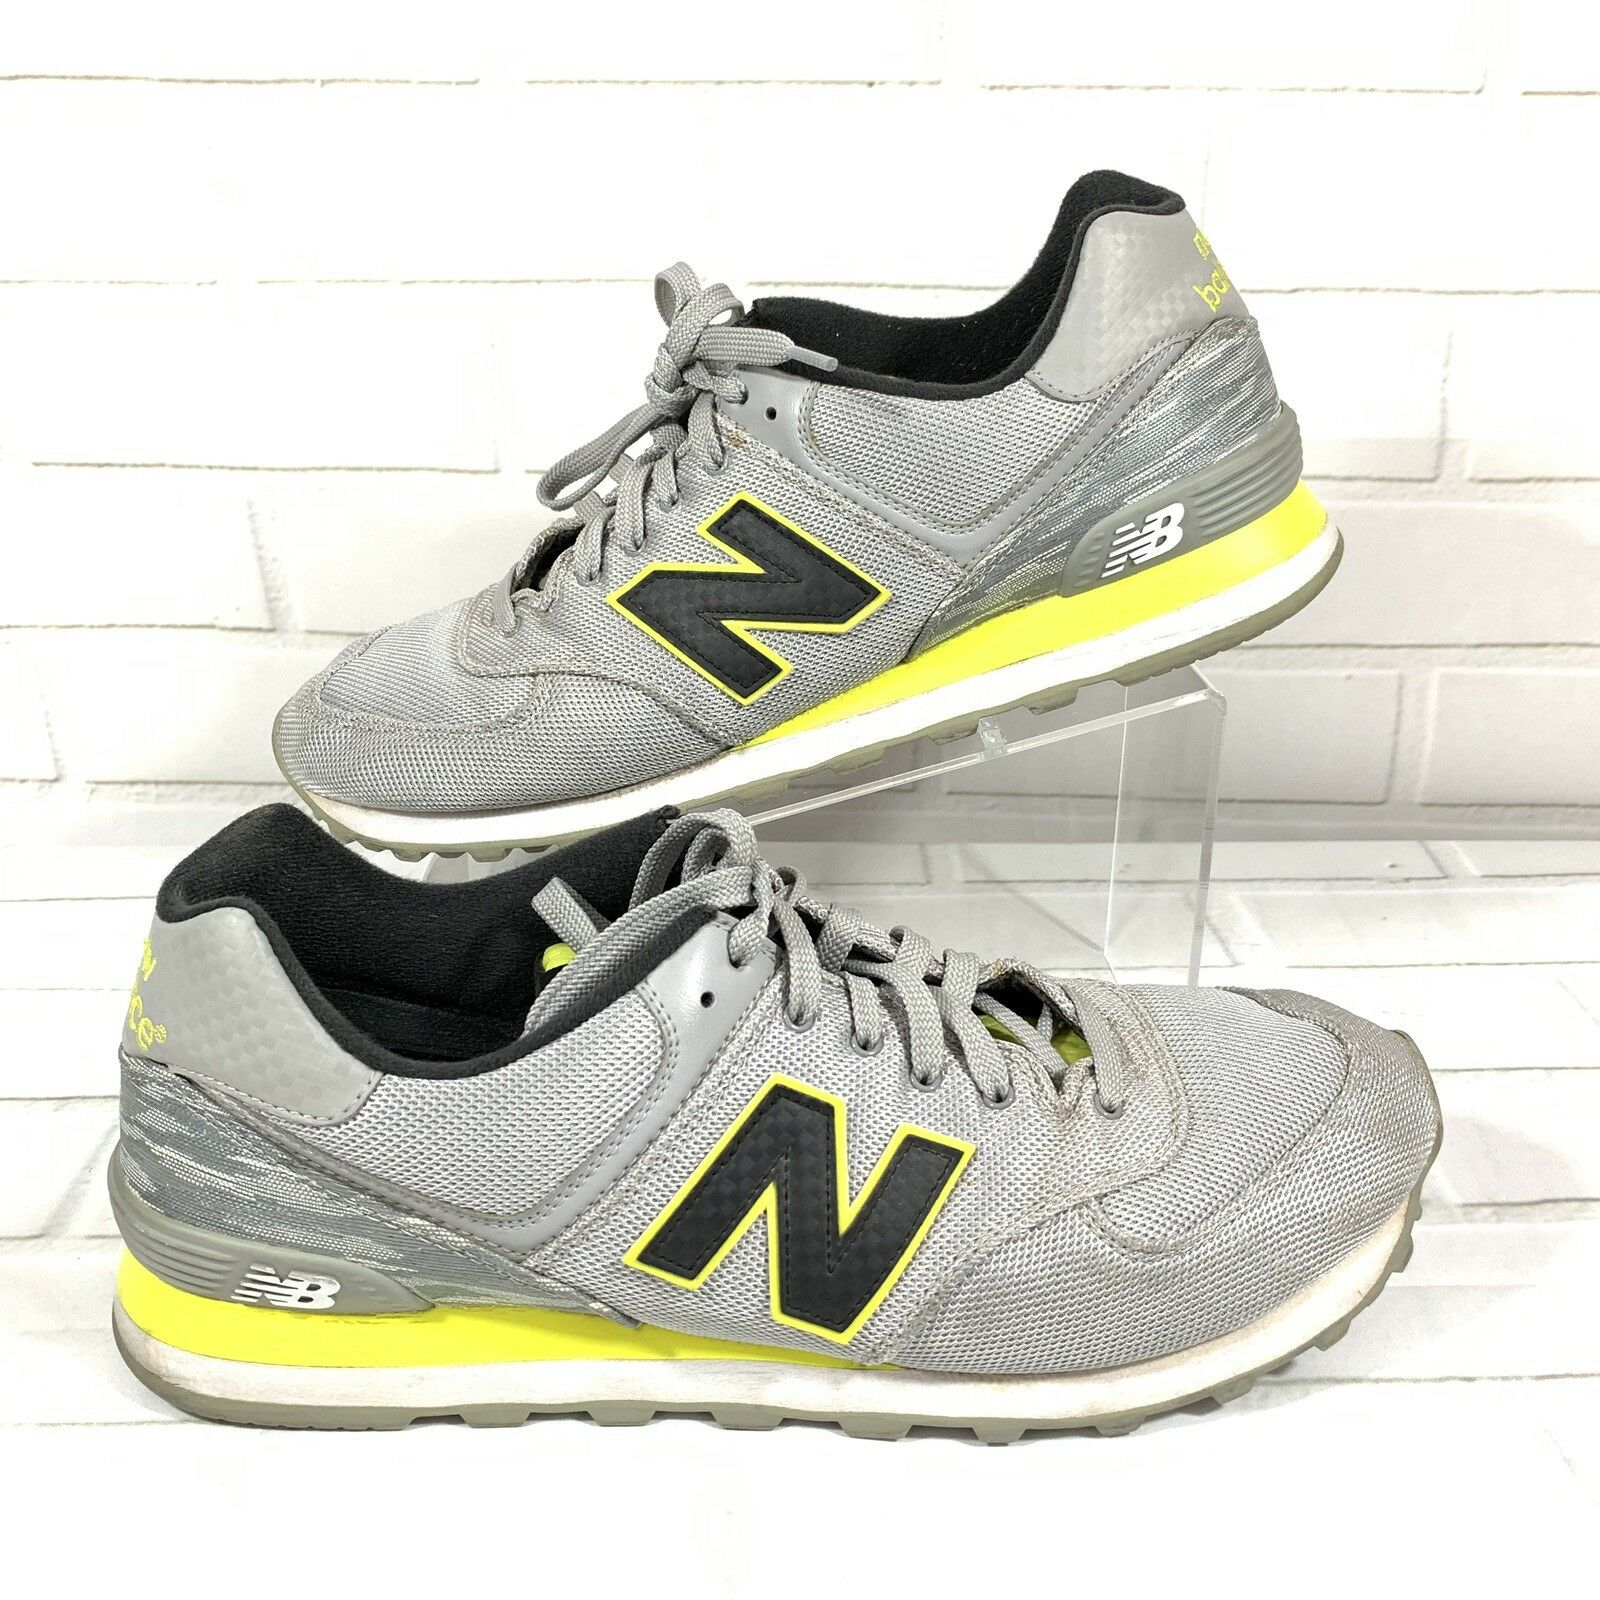 Mens New Balance 574 Summer Waves GreyYellow Running shoes Size 12 limited